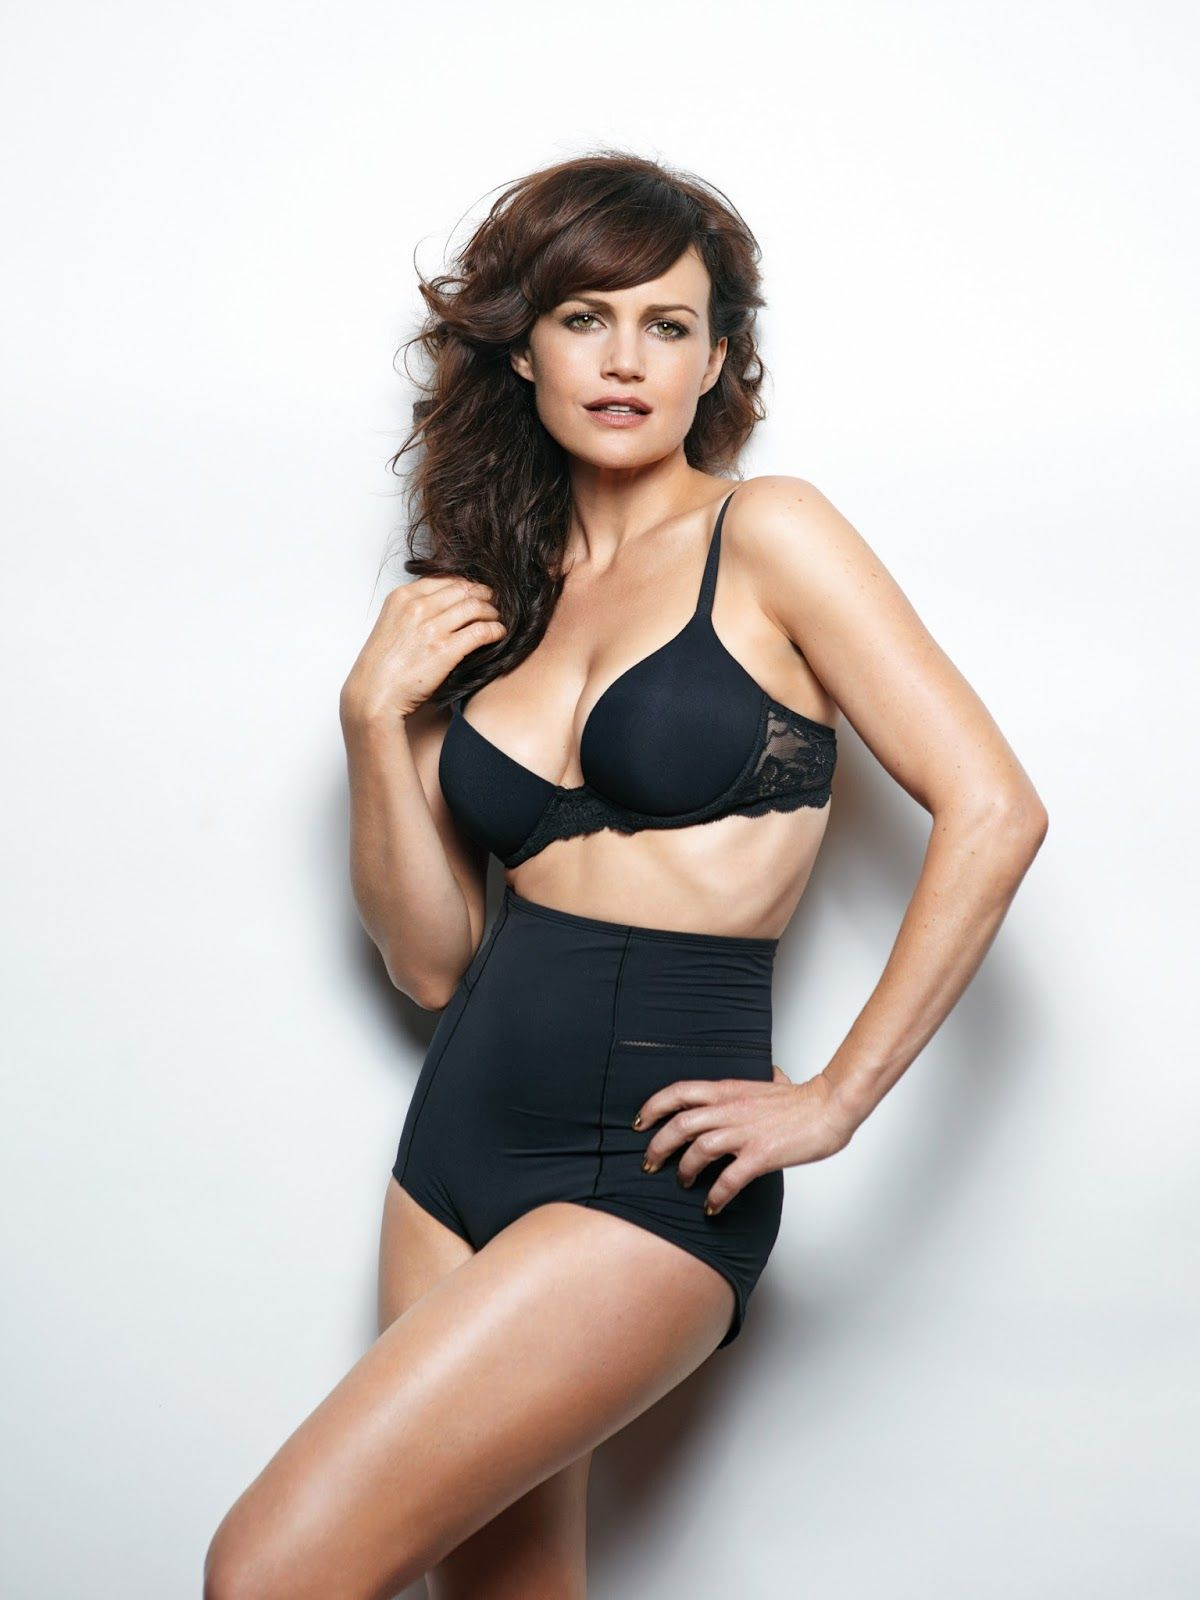 Celebrites Carla Gugino nude photos 2019